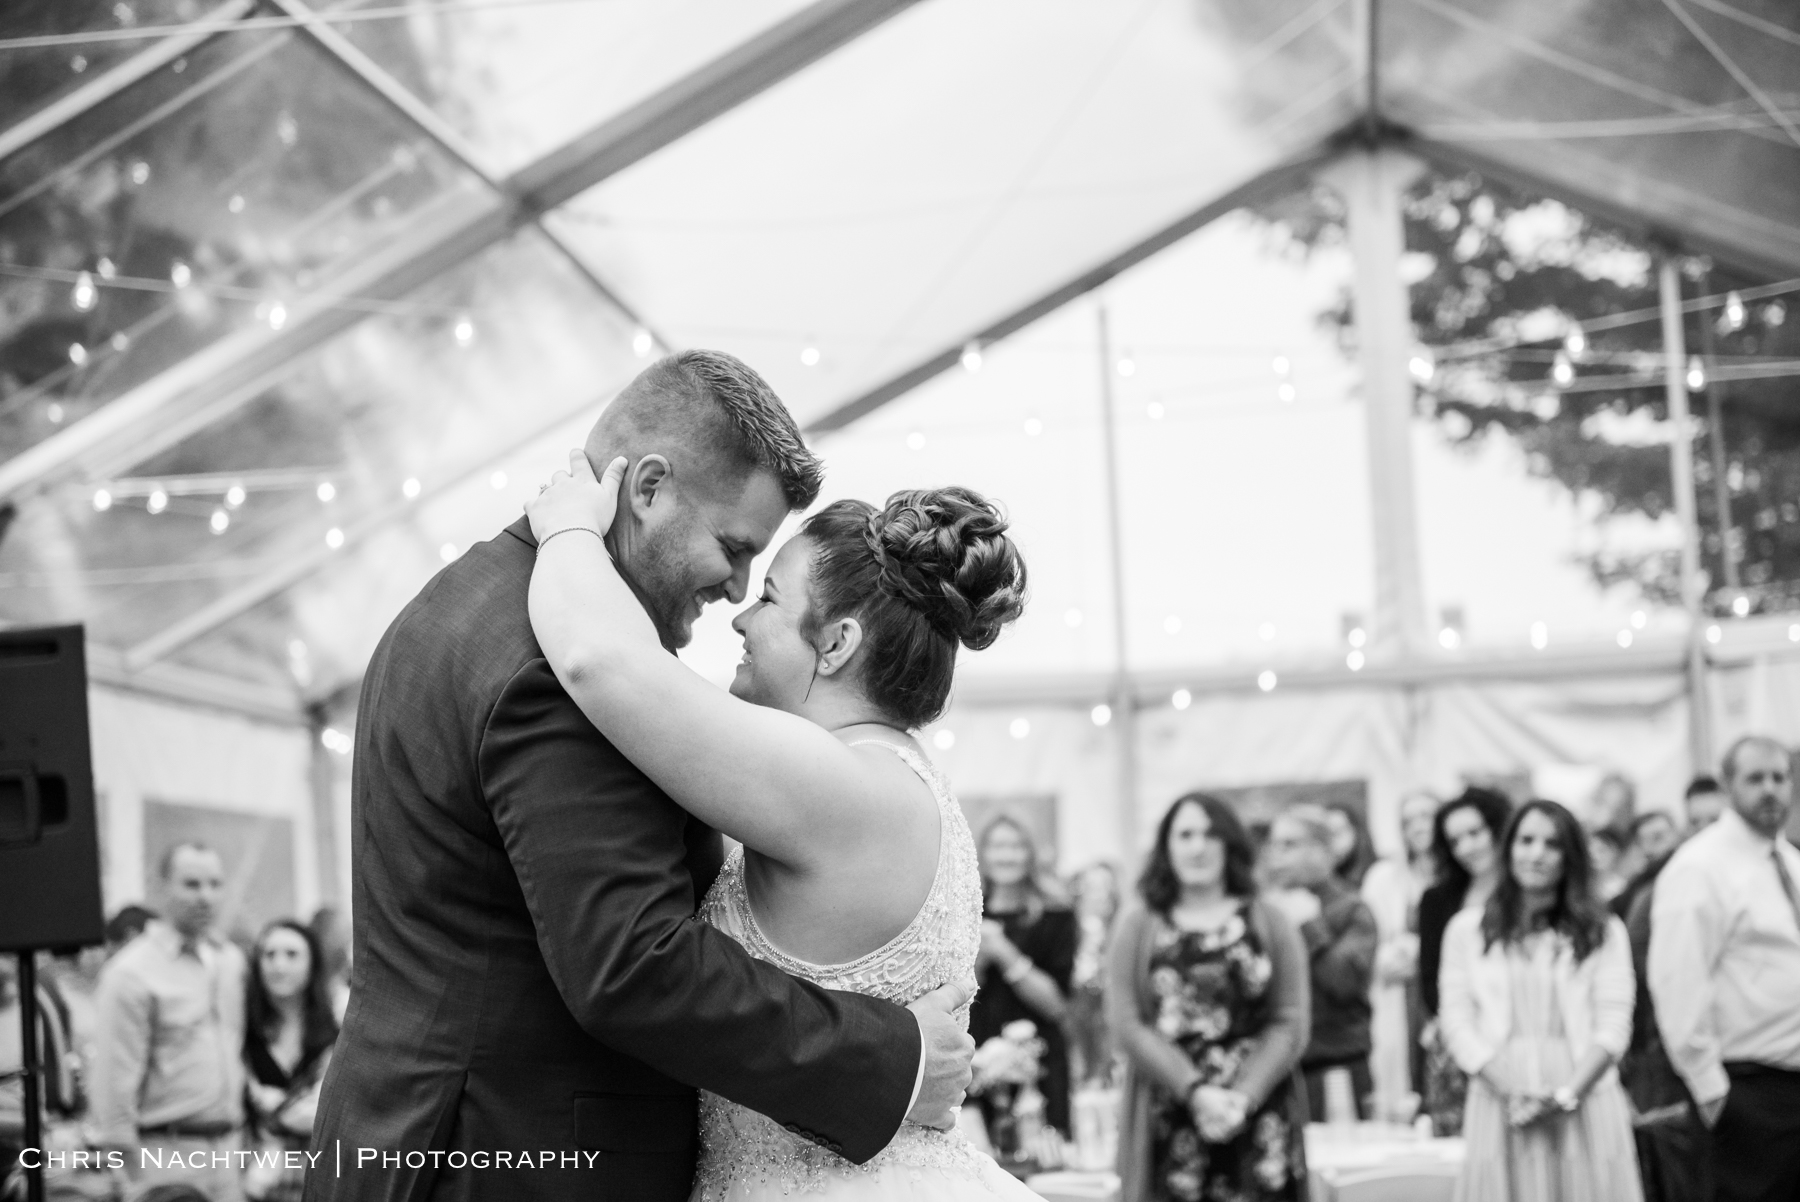 wedding-photographers-connecticut-affordable-chris-nachtwey-photography-2019-23.jpg